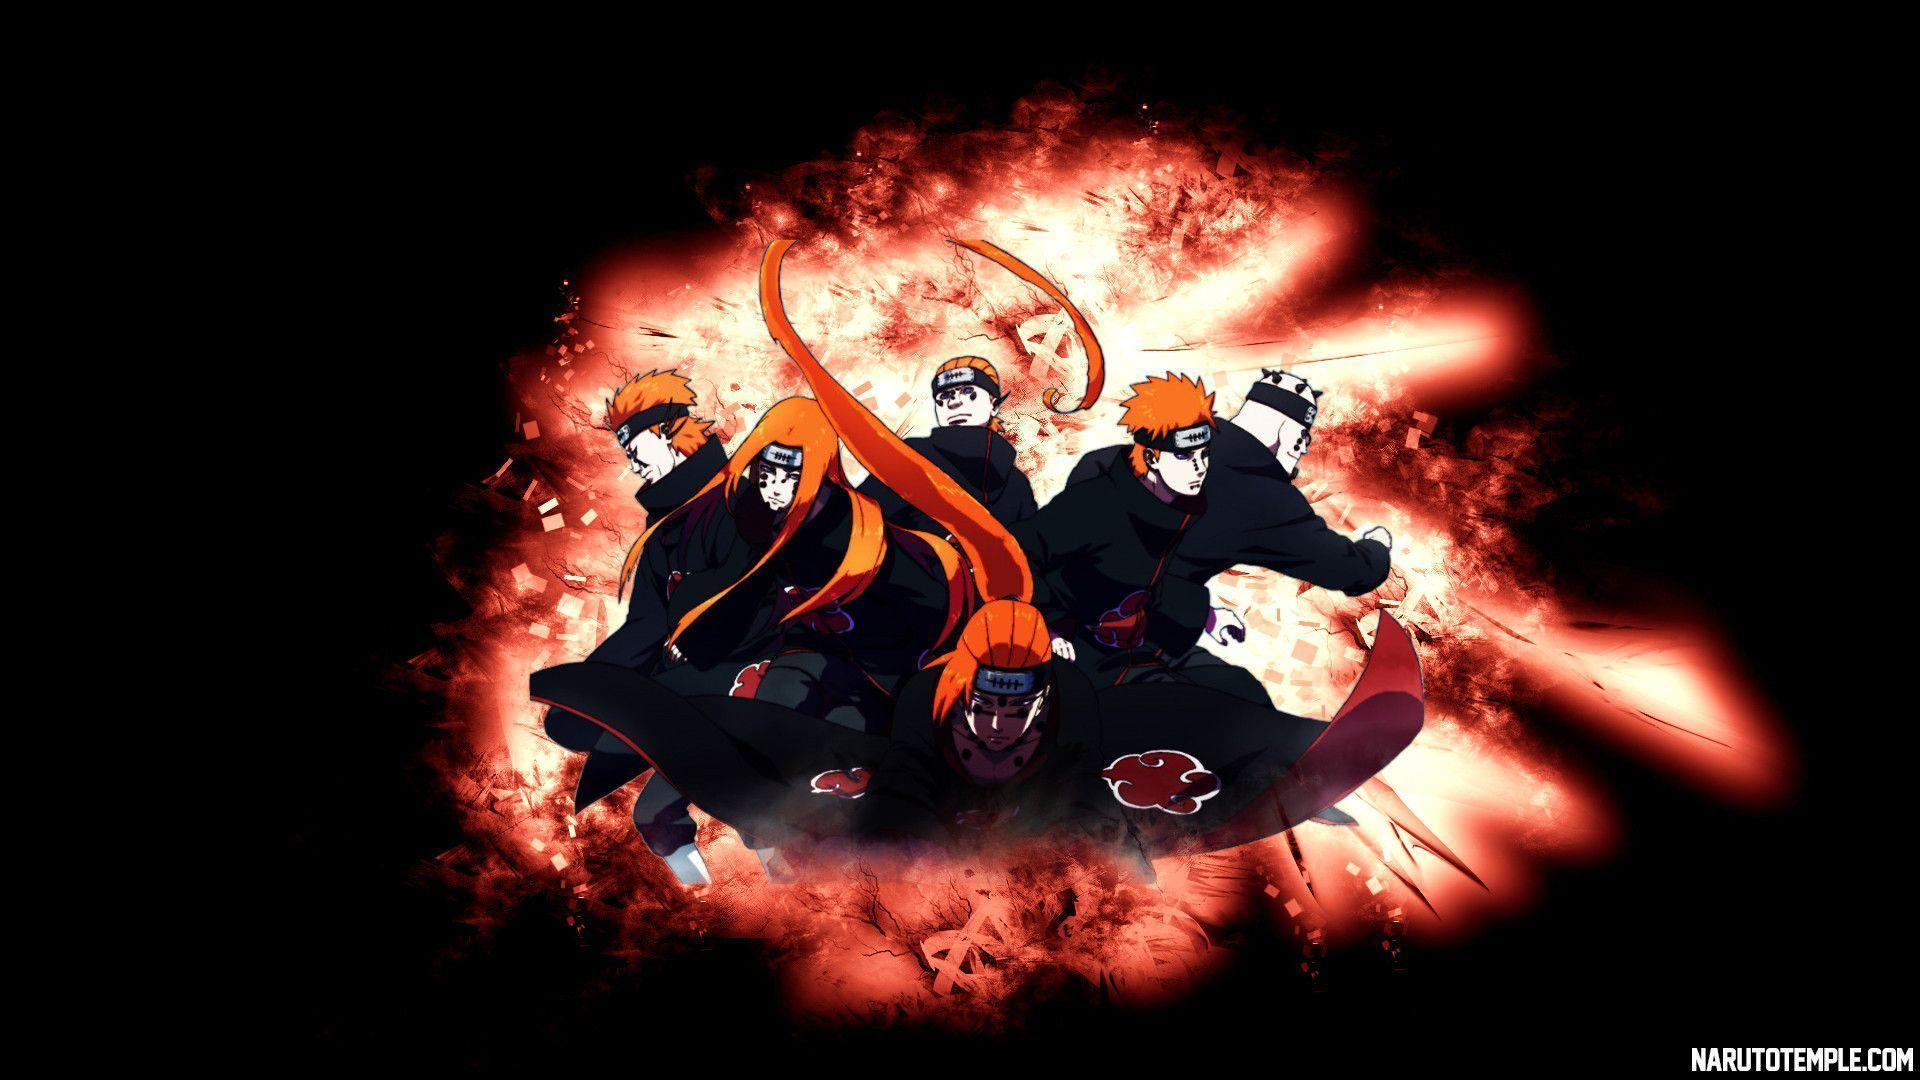 wallpapers for pain wallpaper hd naruto